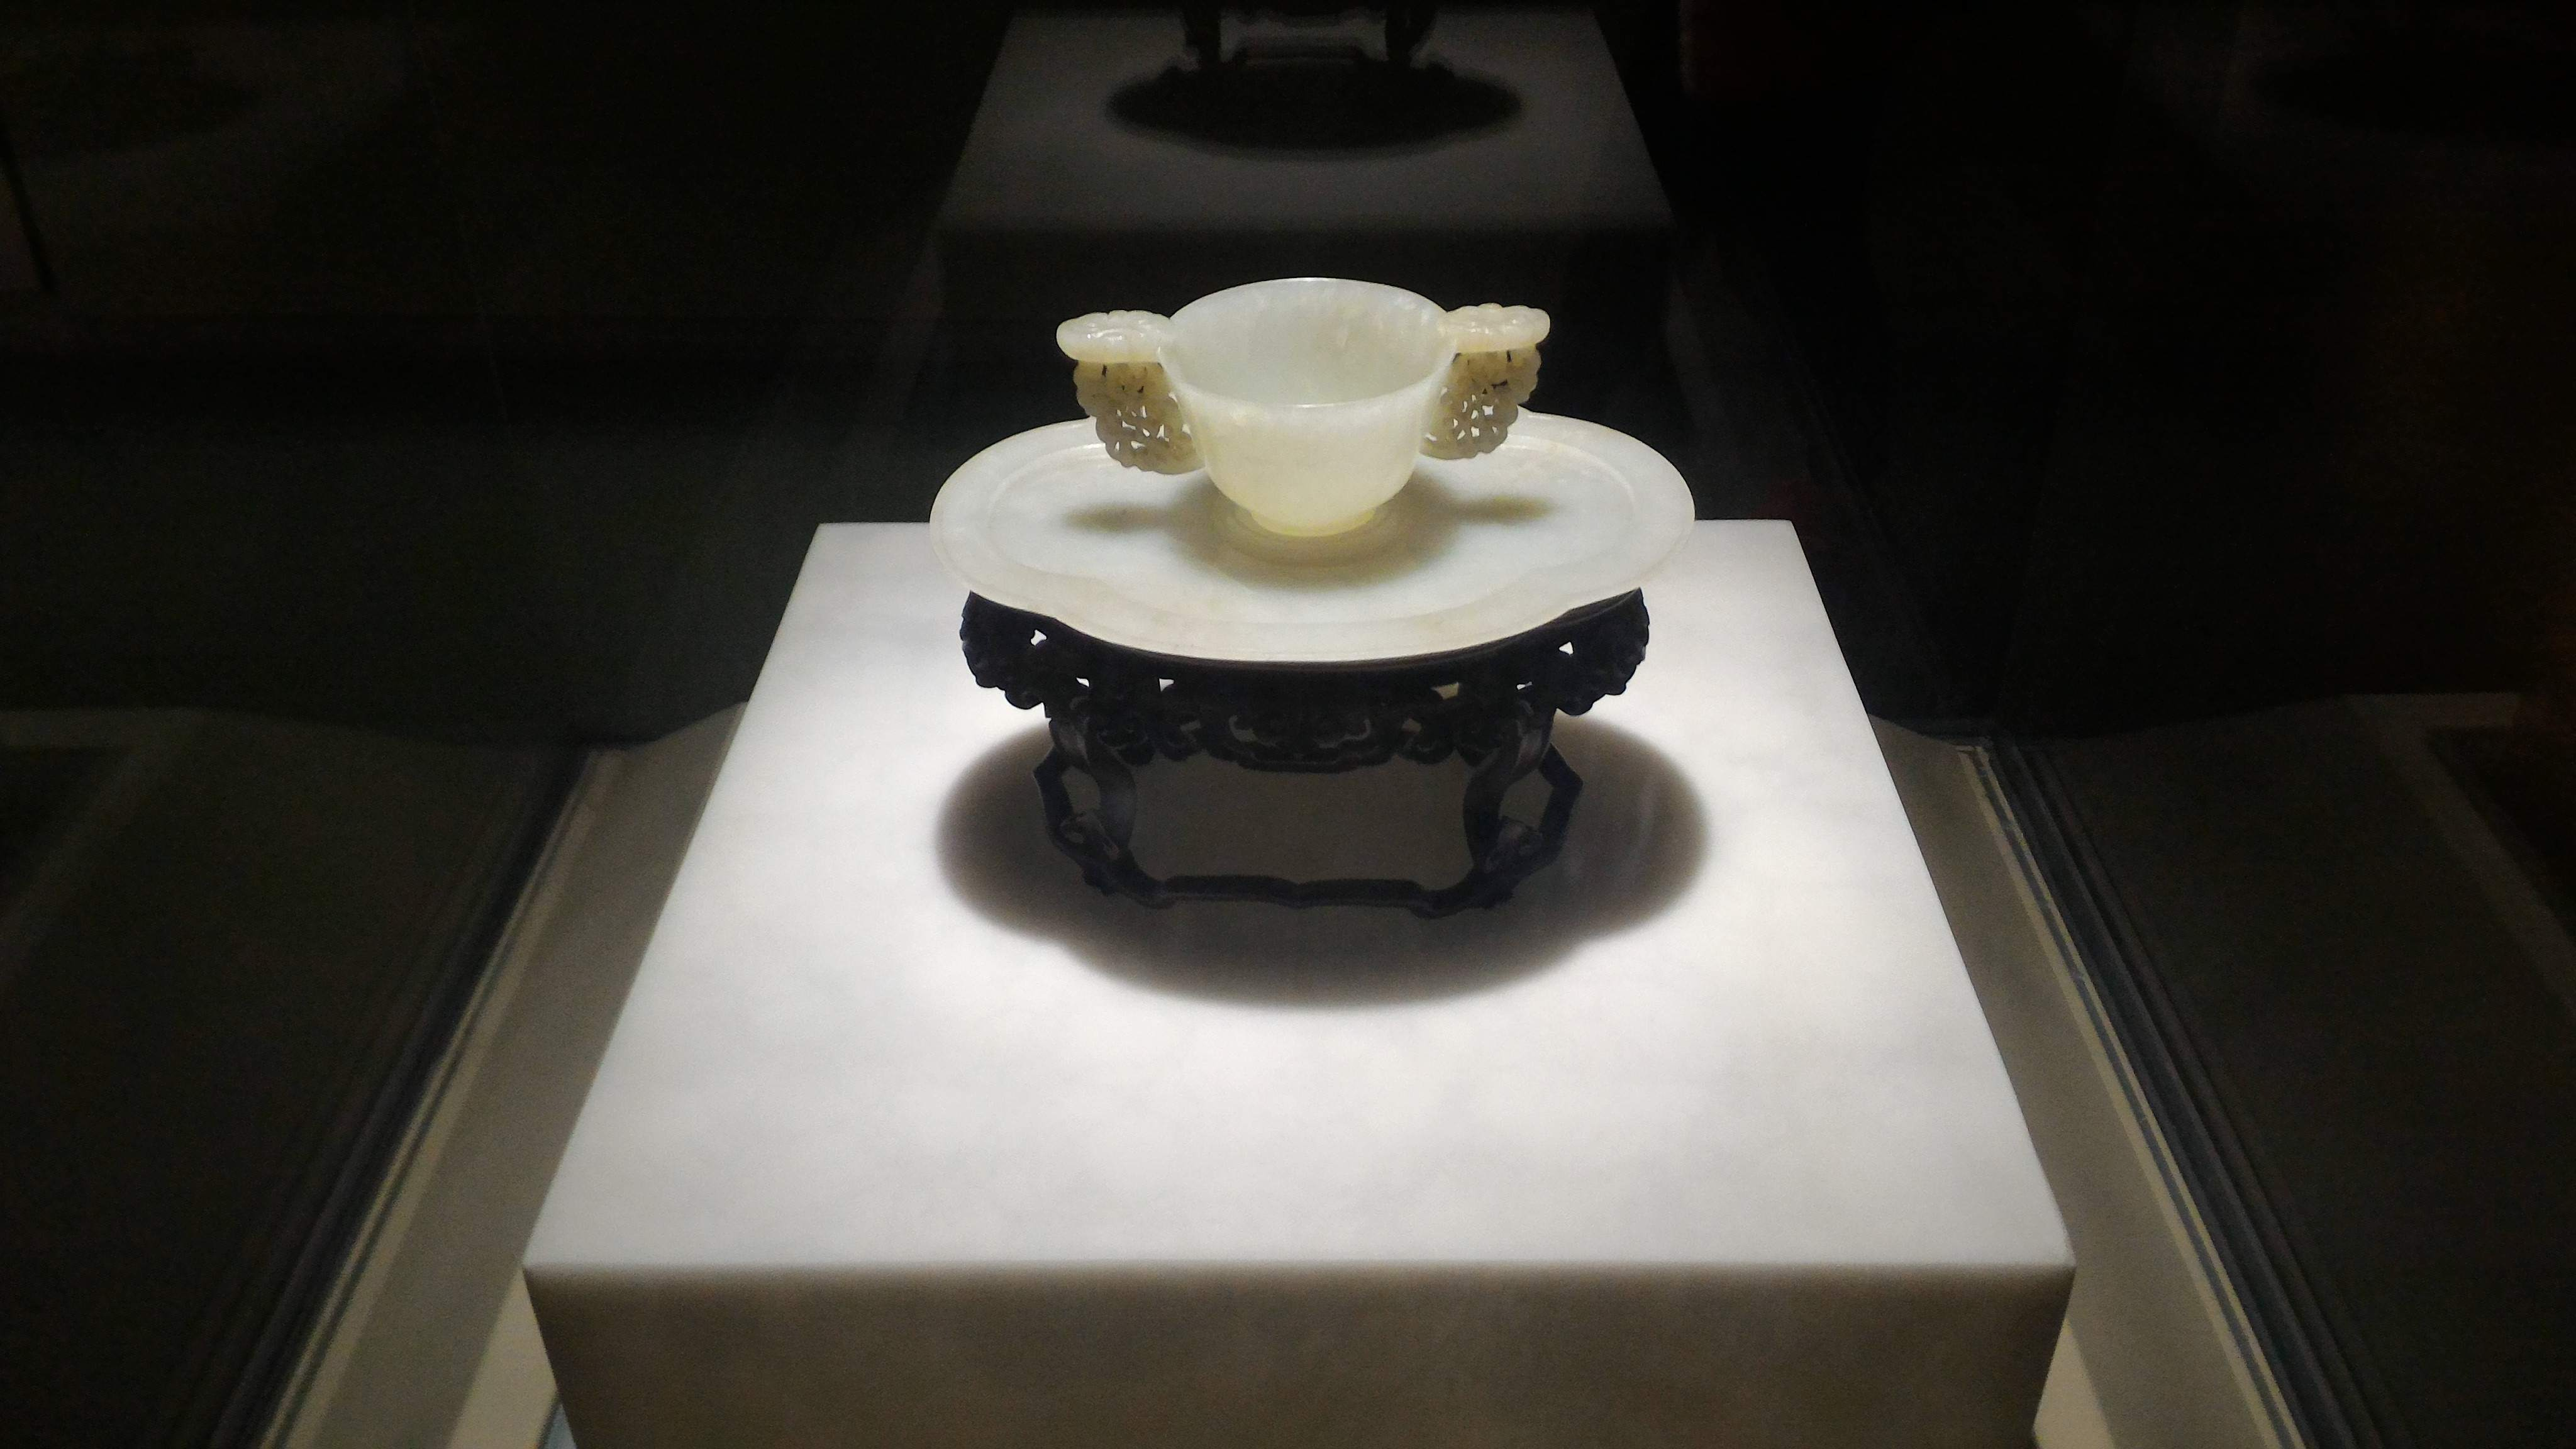 A teacup of pure white jade